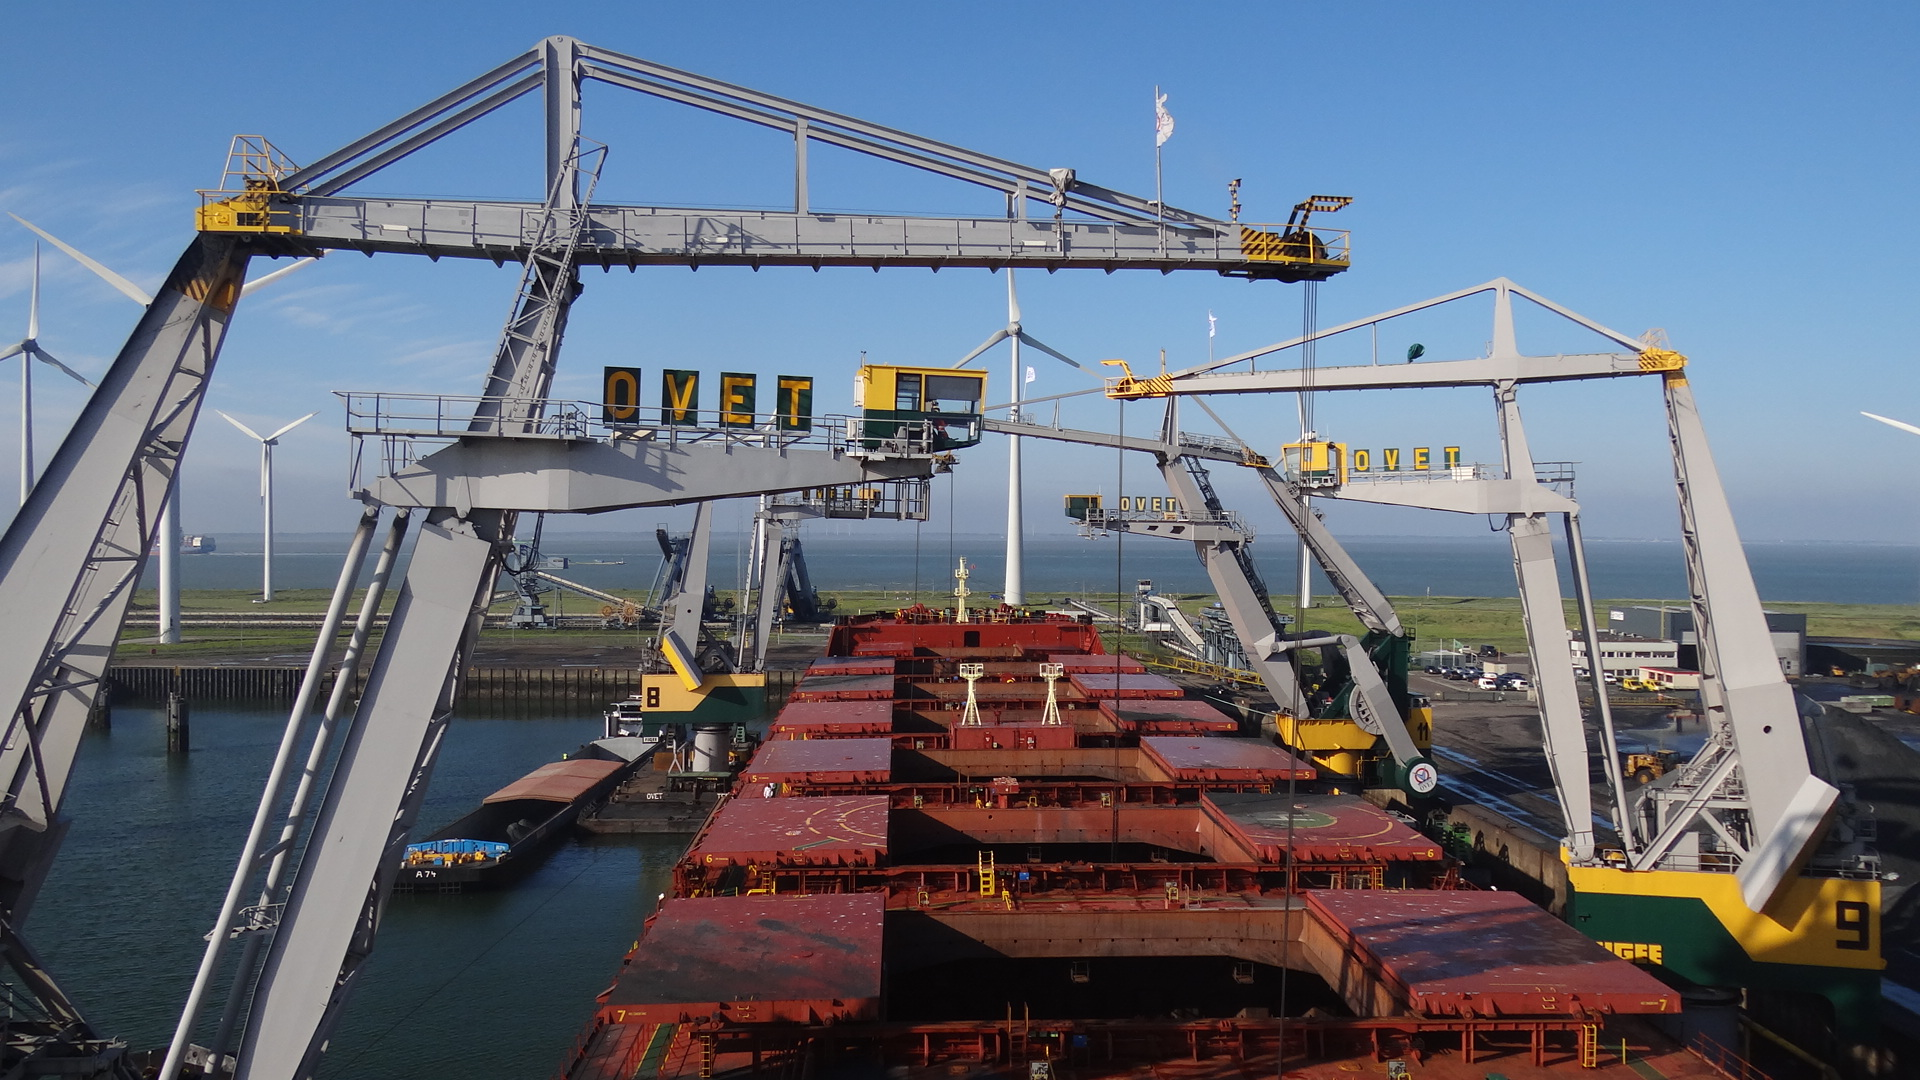 Discharging with 4 Floating cranes